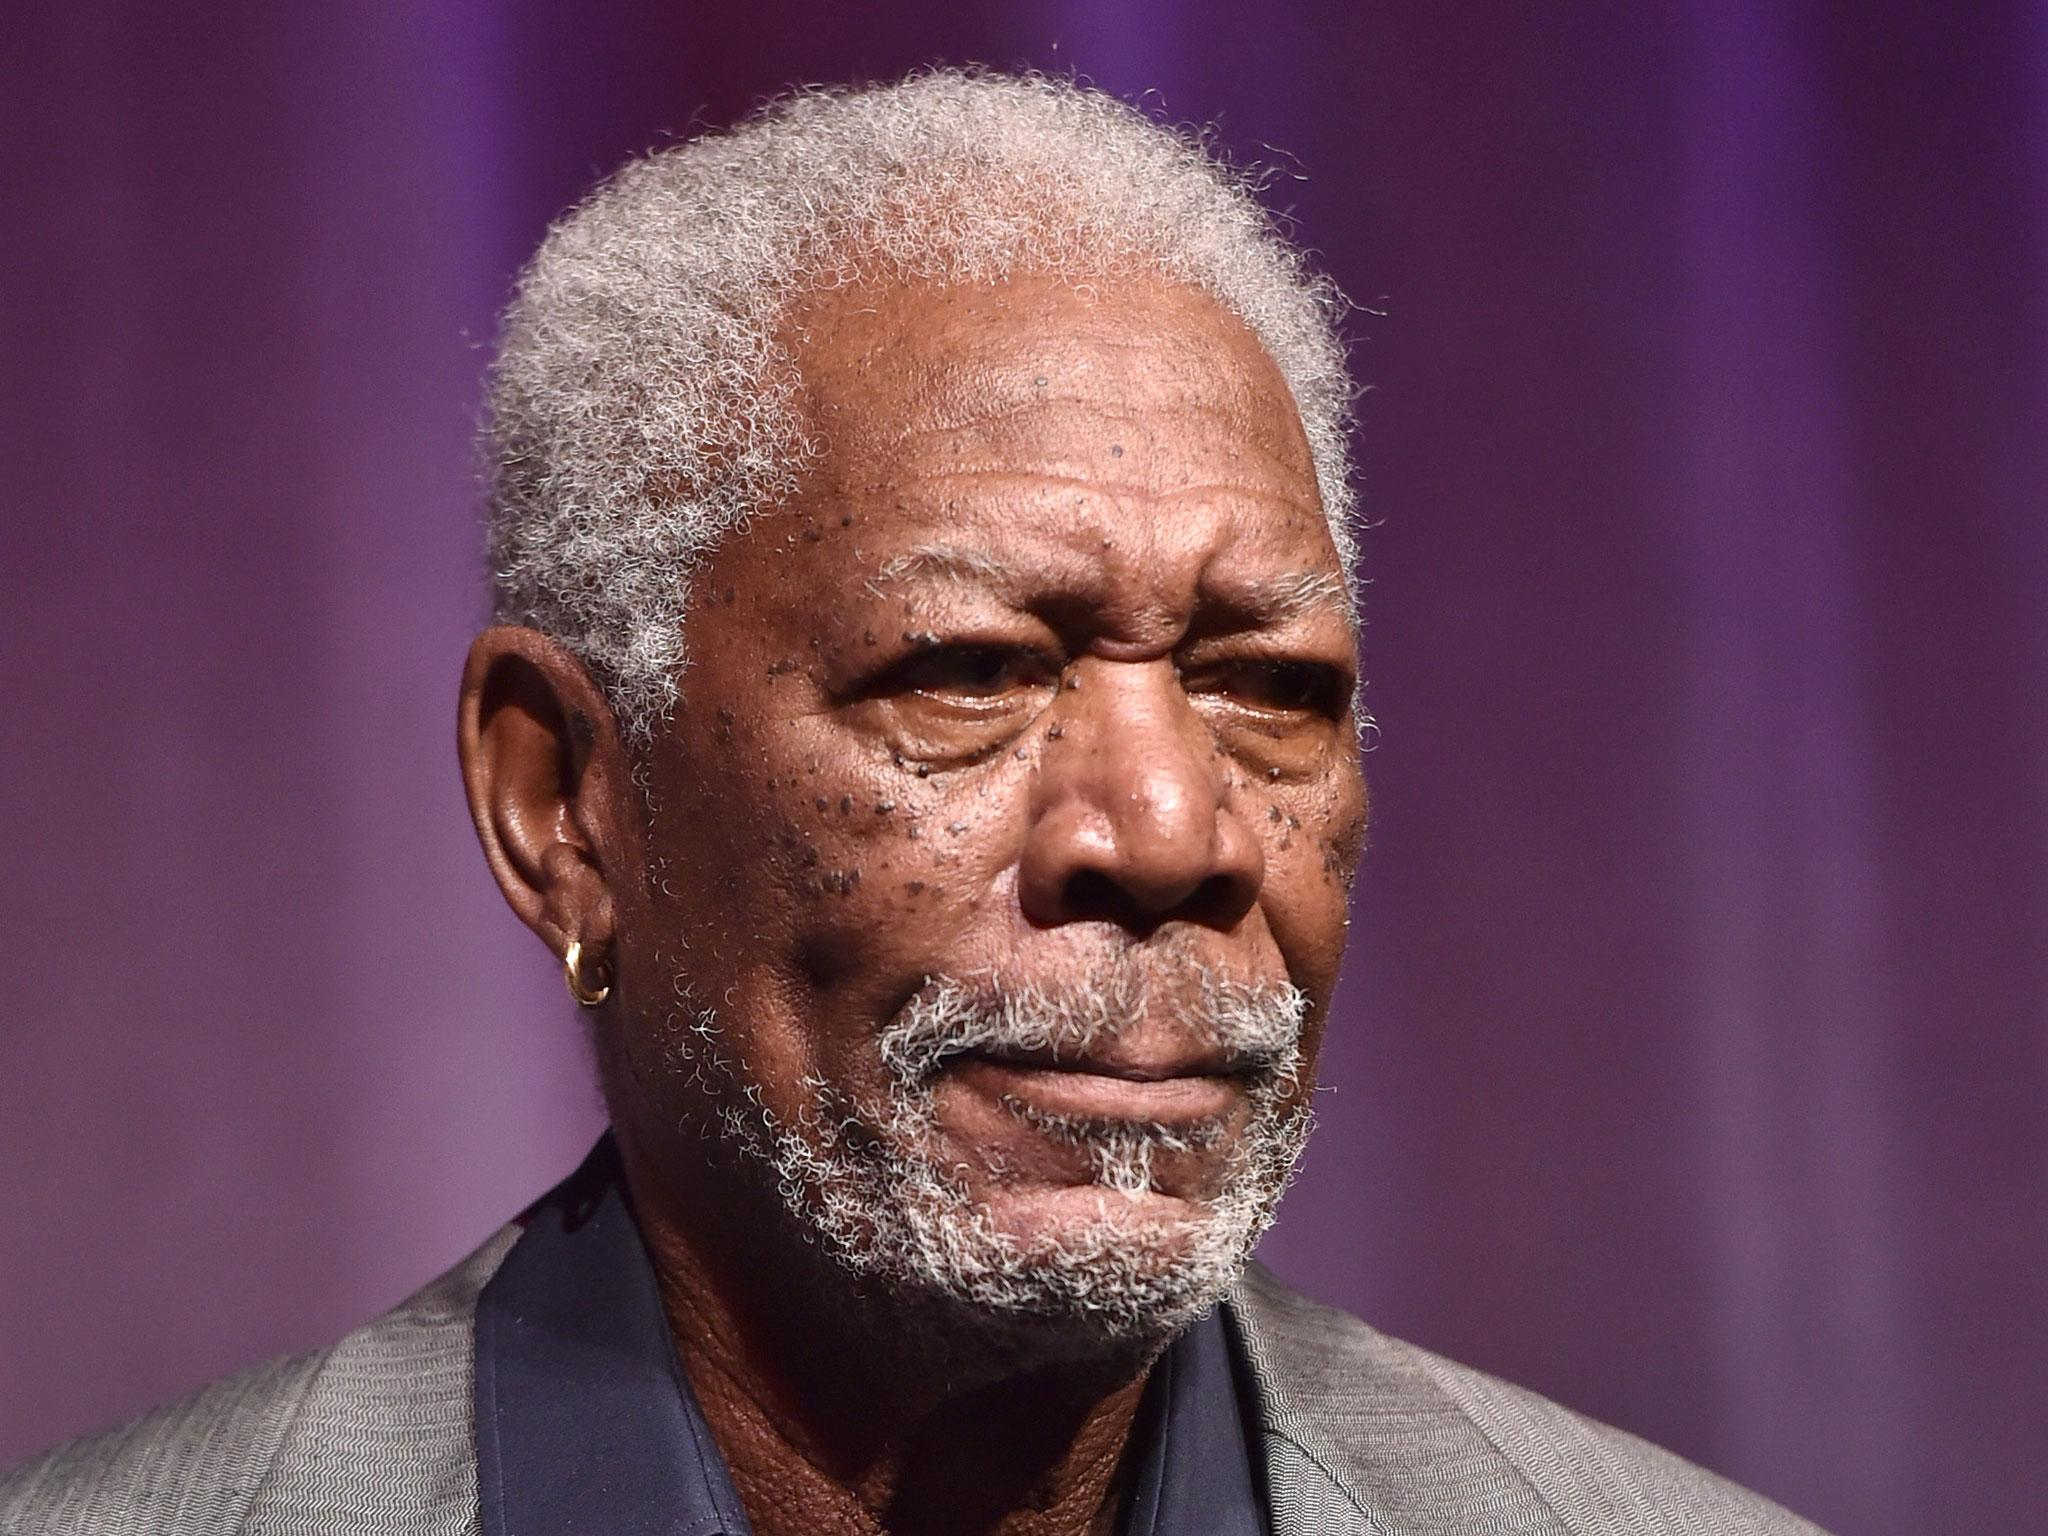 Morgan Freeman Lands Malfunctioning Plane Four Times En